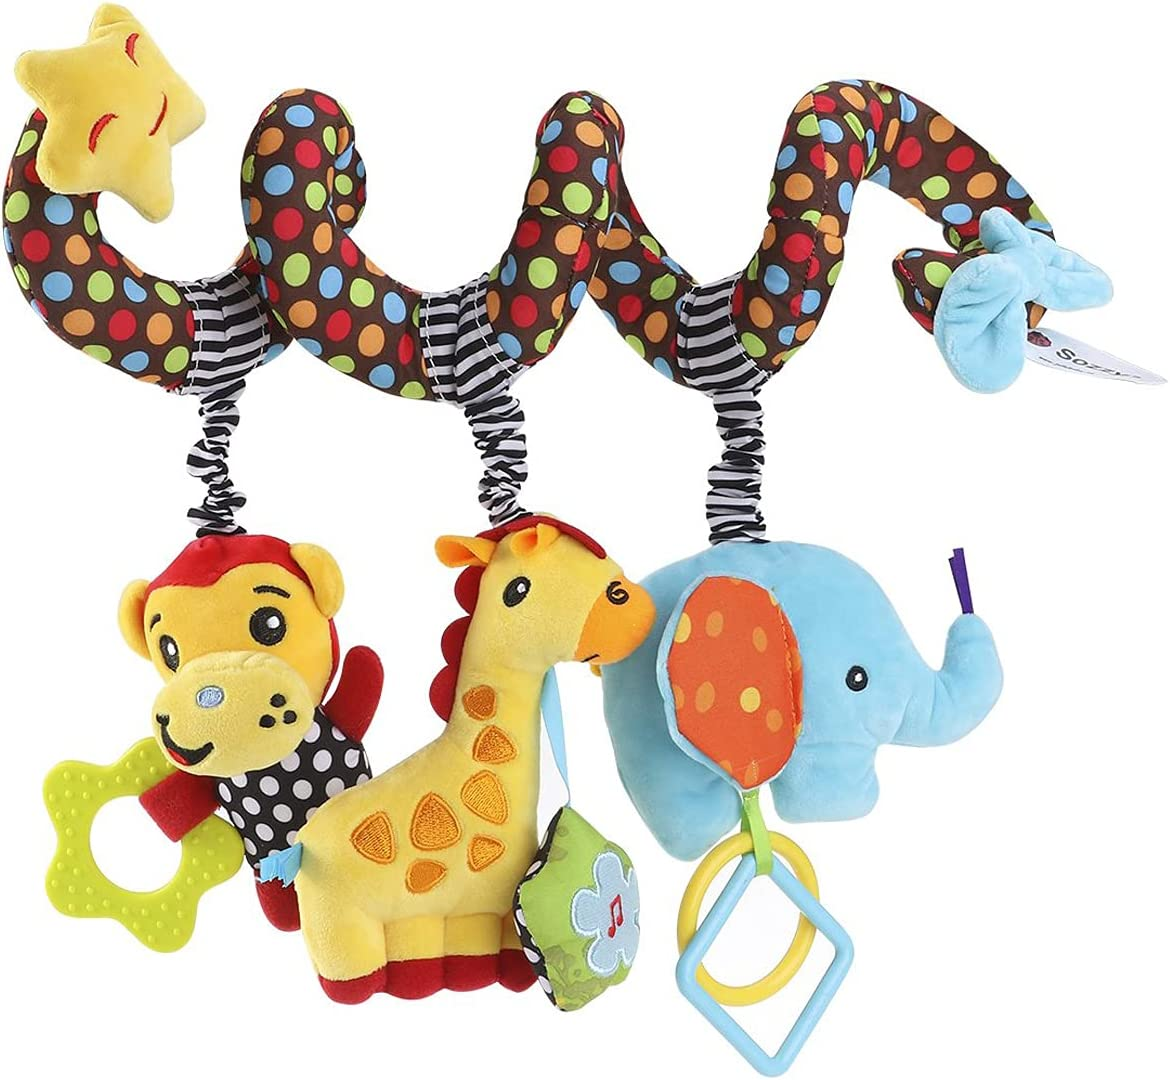 LuxAsYou Baby's Fun Accessory Cartoon Cute Animals Shapes Prams Stroller Bed Spiral Activity Hanging Toys Baby Plush Hanging Toys Colorful Soothing Toys (Multicolor#001)